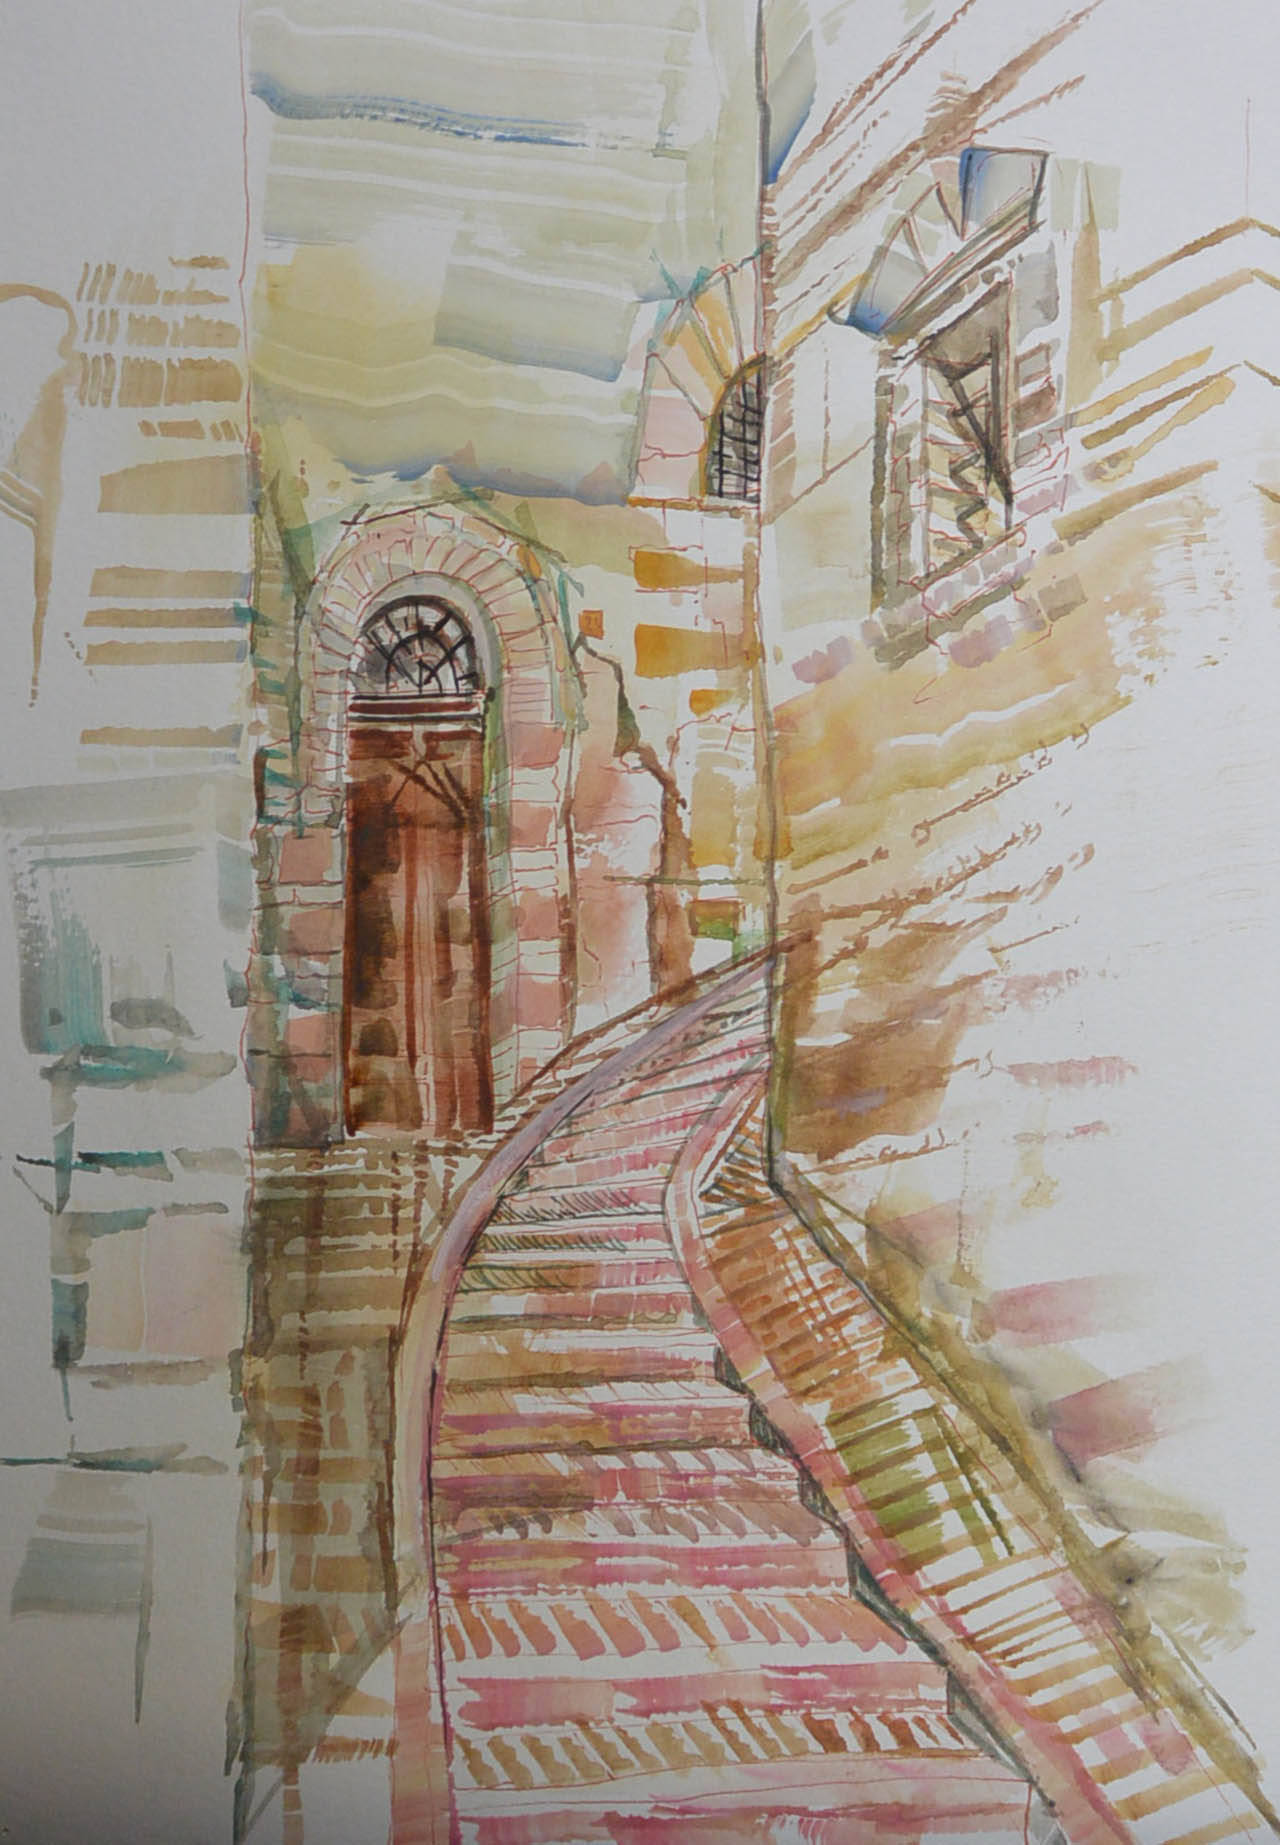 Assisi 2, by Carol Nunnelly